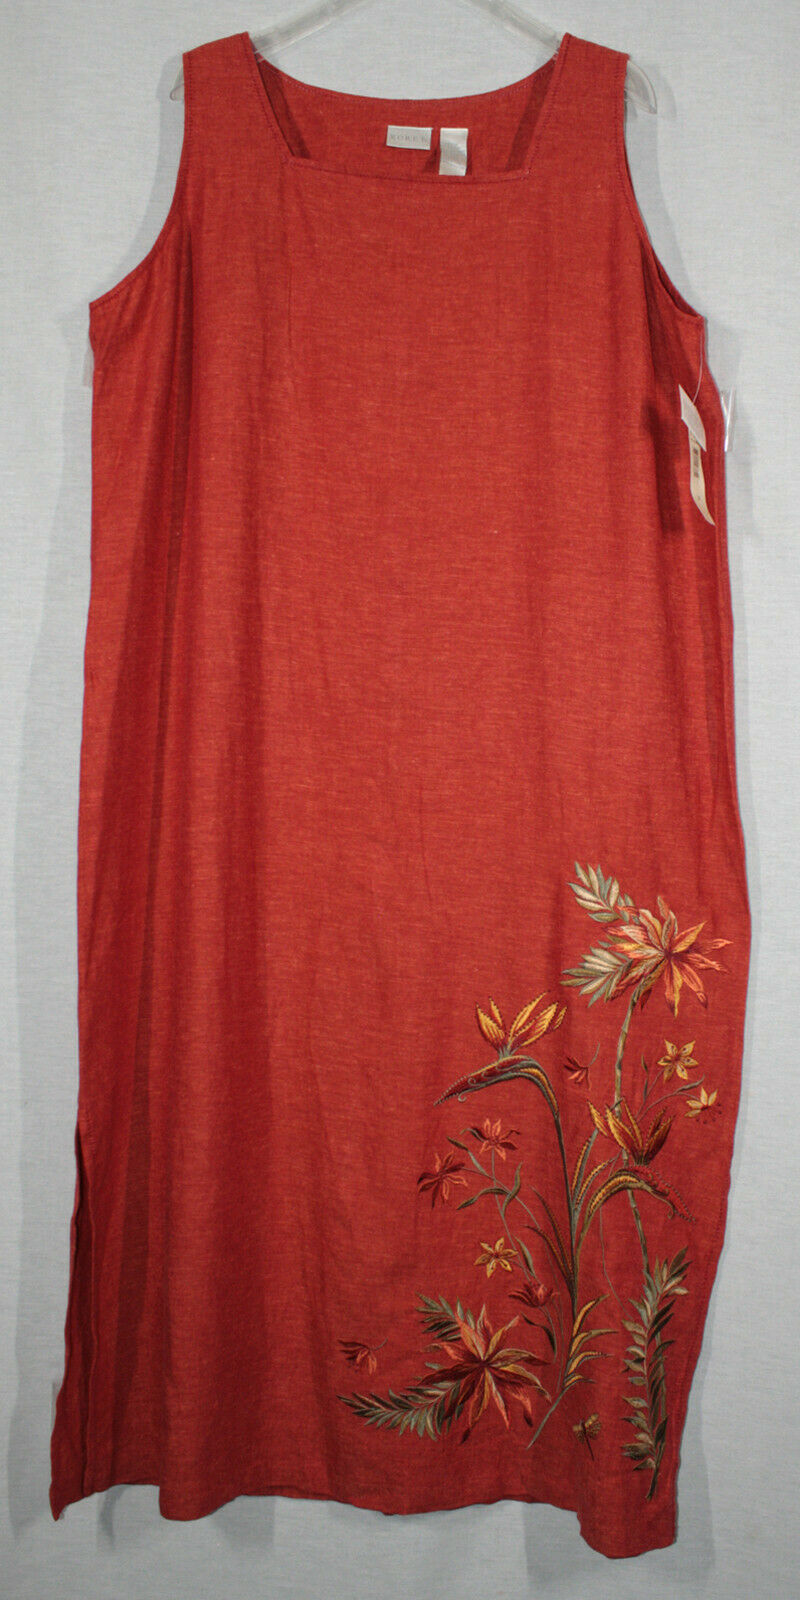 KORET SUMATRA WOMANS LONG EMBROIDERED ORANGE LINEN DRESS SIZE 20W NEW WITH TAGS